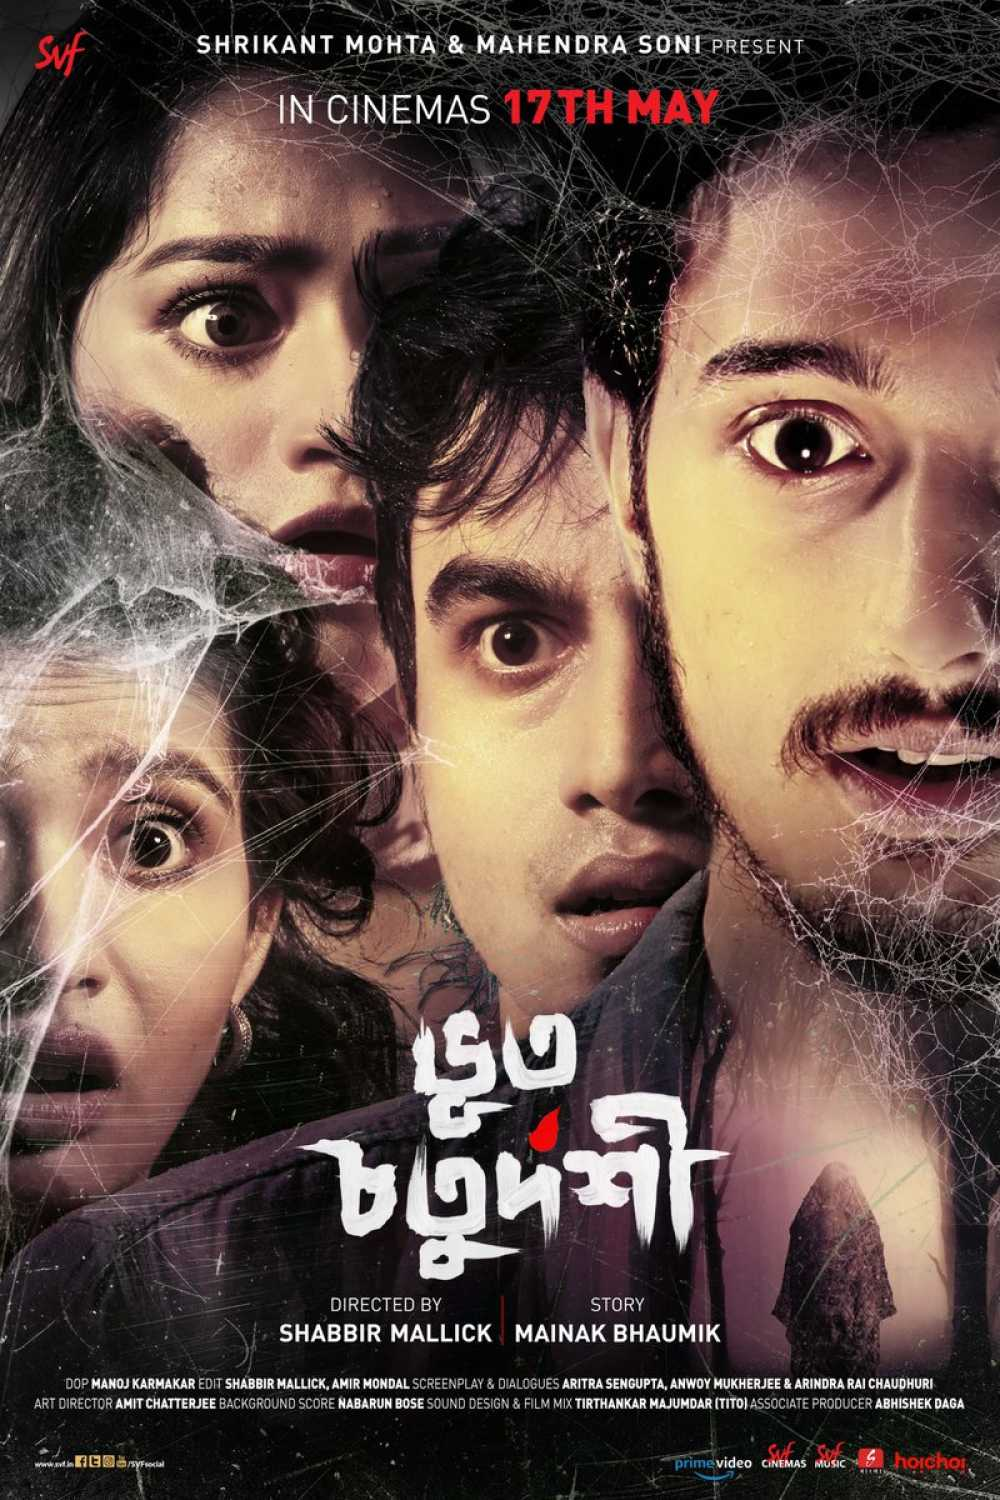 Bhoot Movie Cast (Mountain Shadow Gallery)